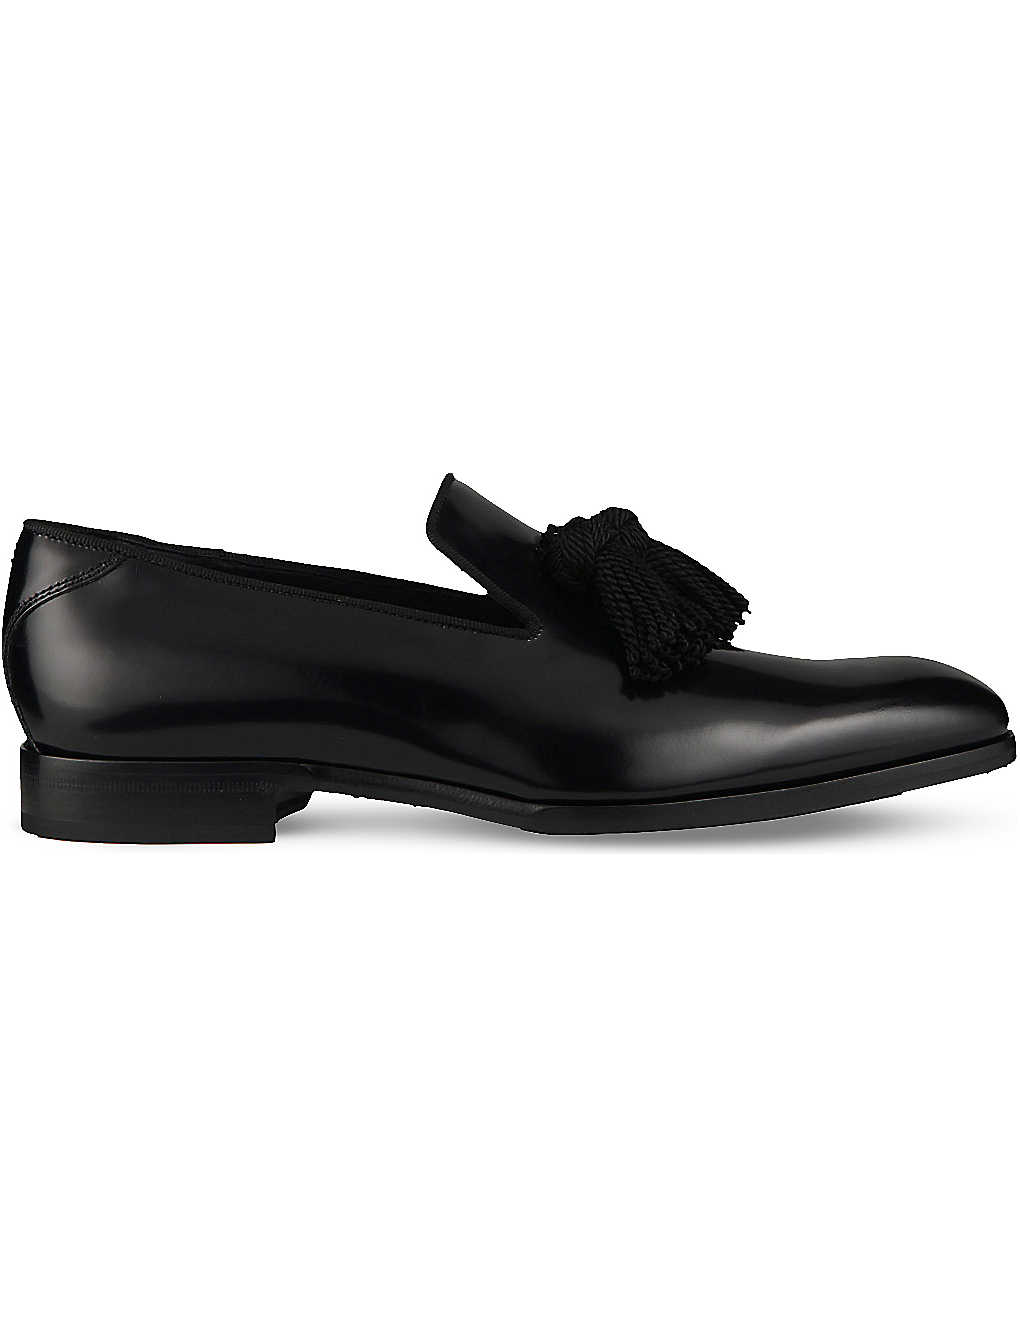 8a49180ff31 JIMMY CHOO - Foxley tassel calf leather and satin loafers ...